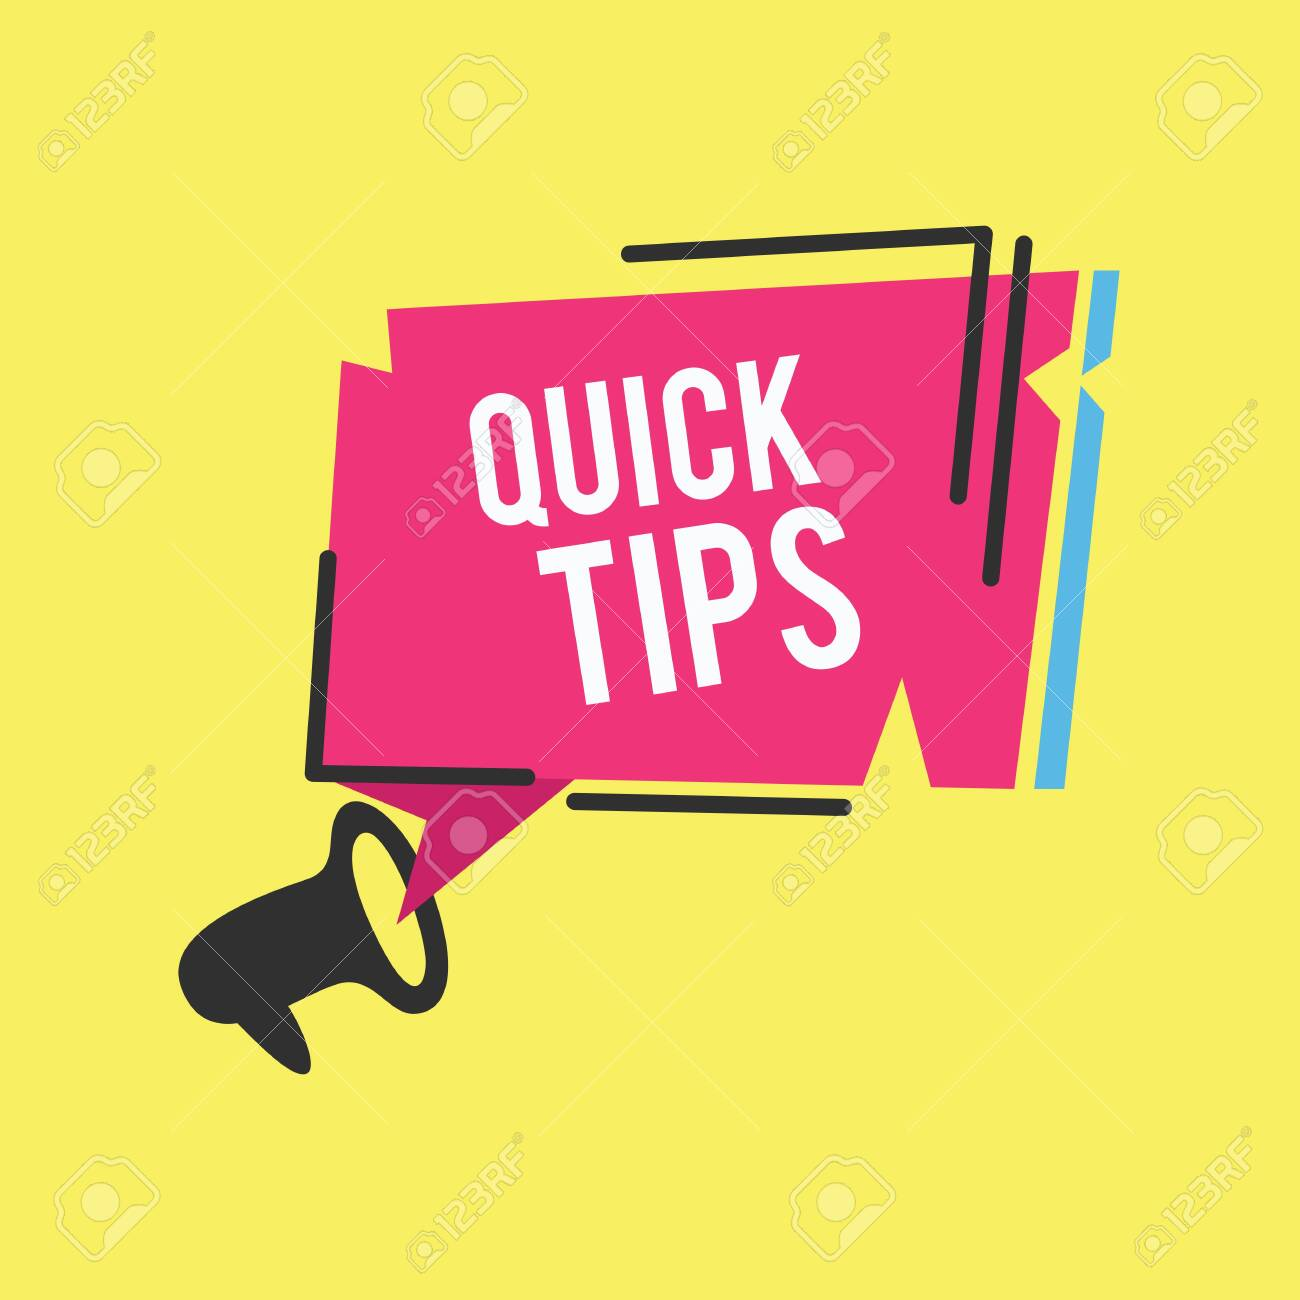 Quick Tips Modern Helpful Tips Banner Vector Illustration Royalty Free Cliparts Vectors And Stock Illustration Image 152125733